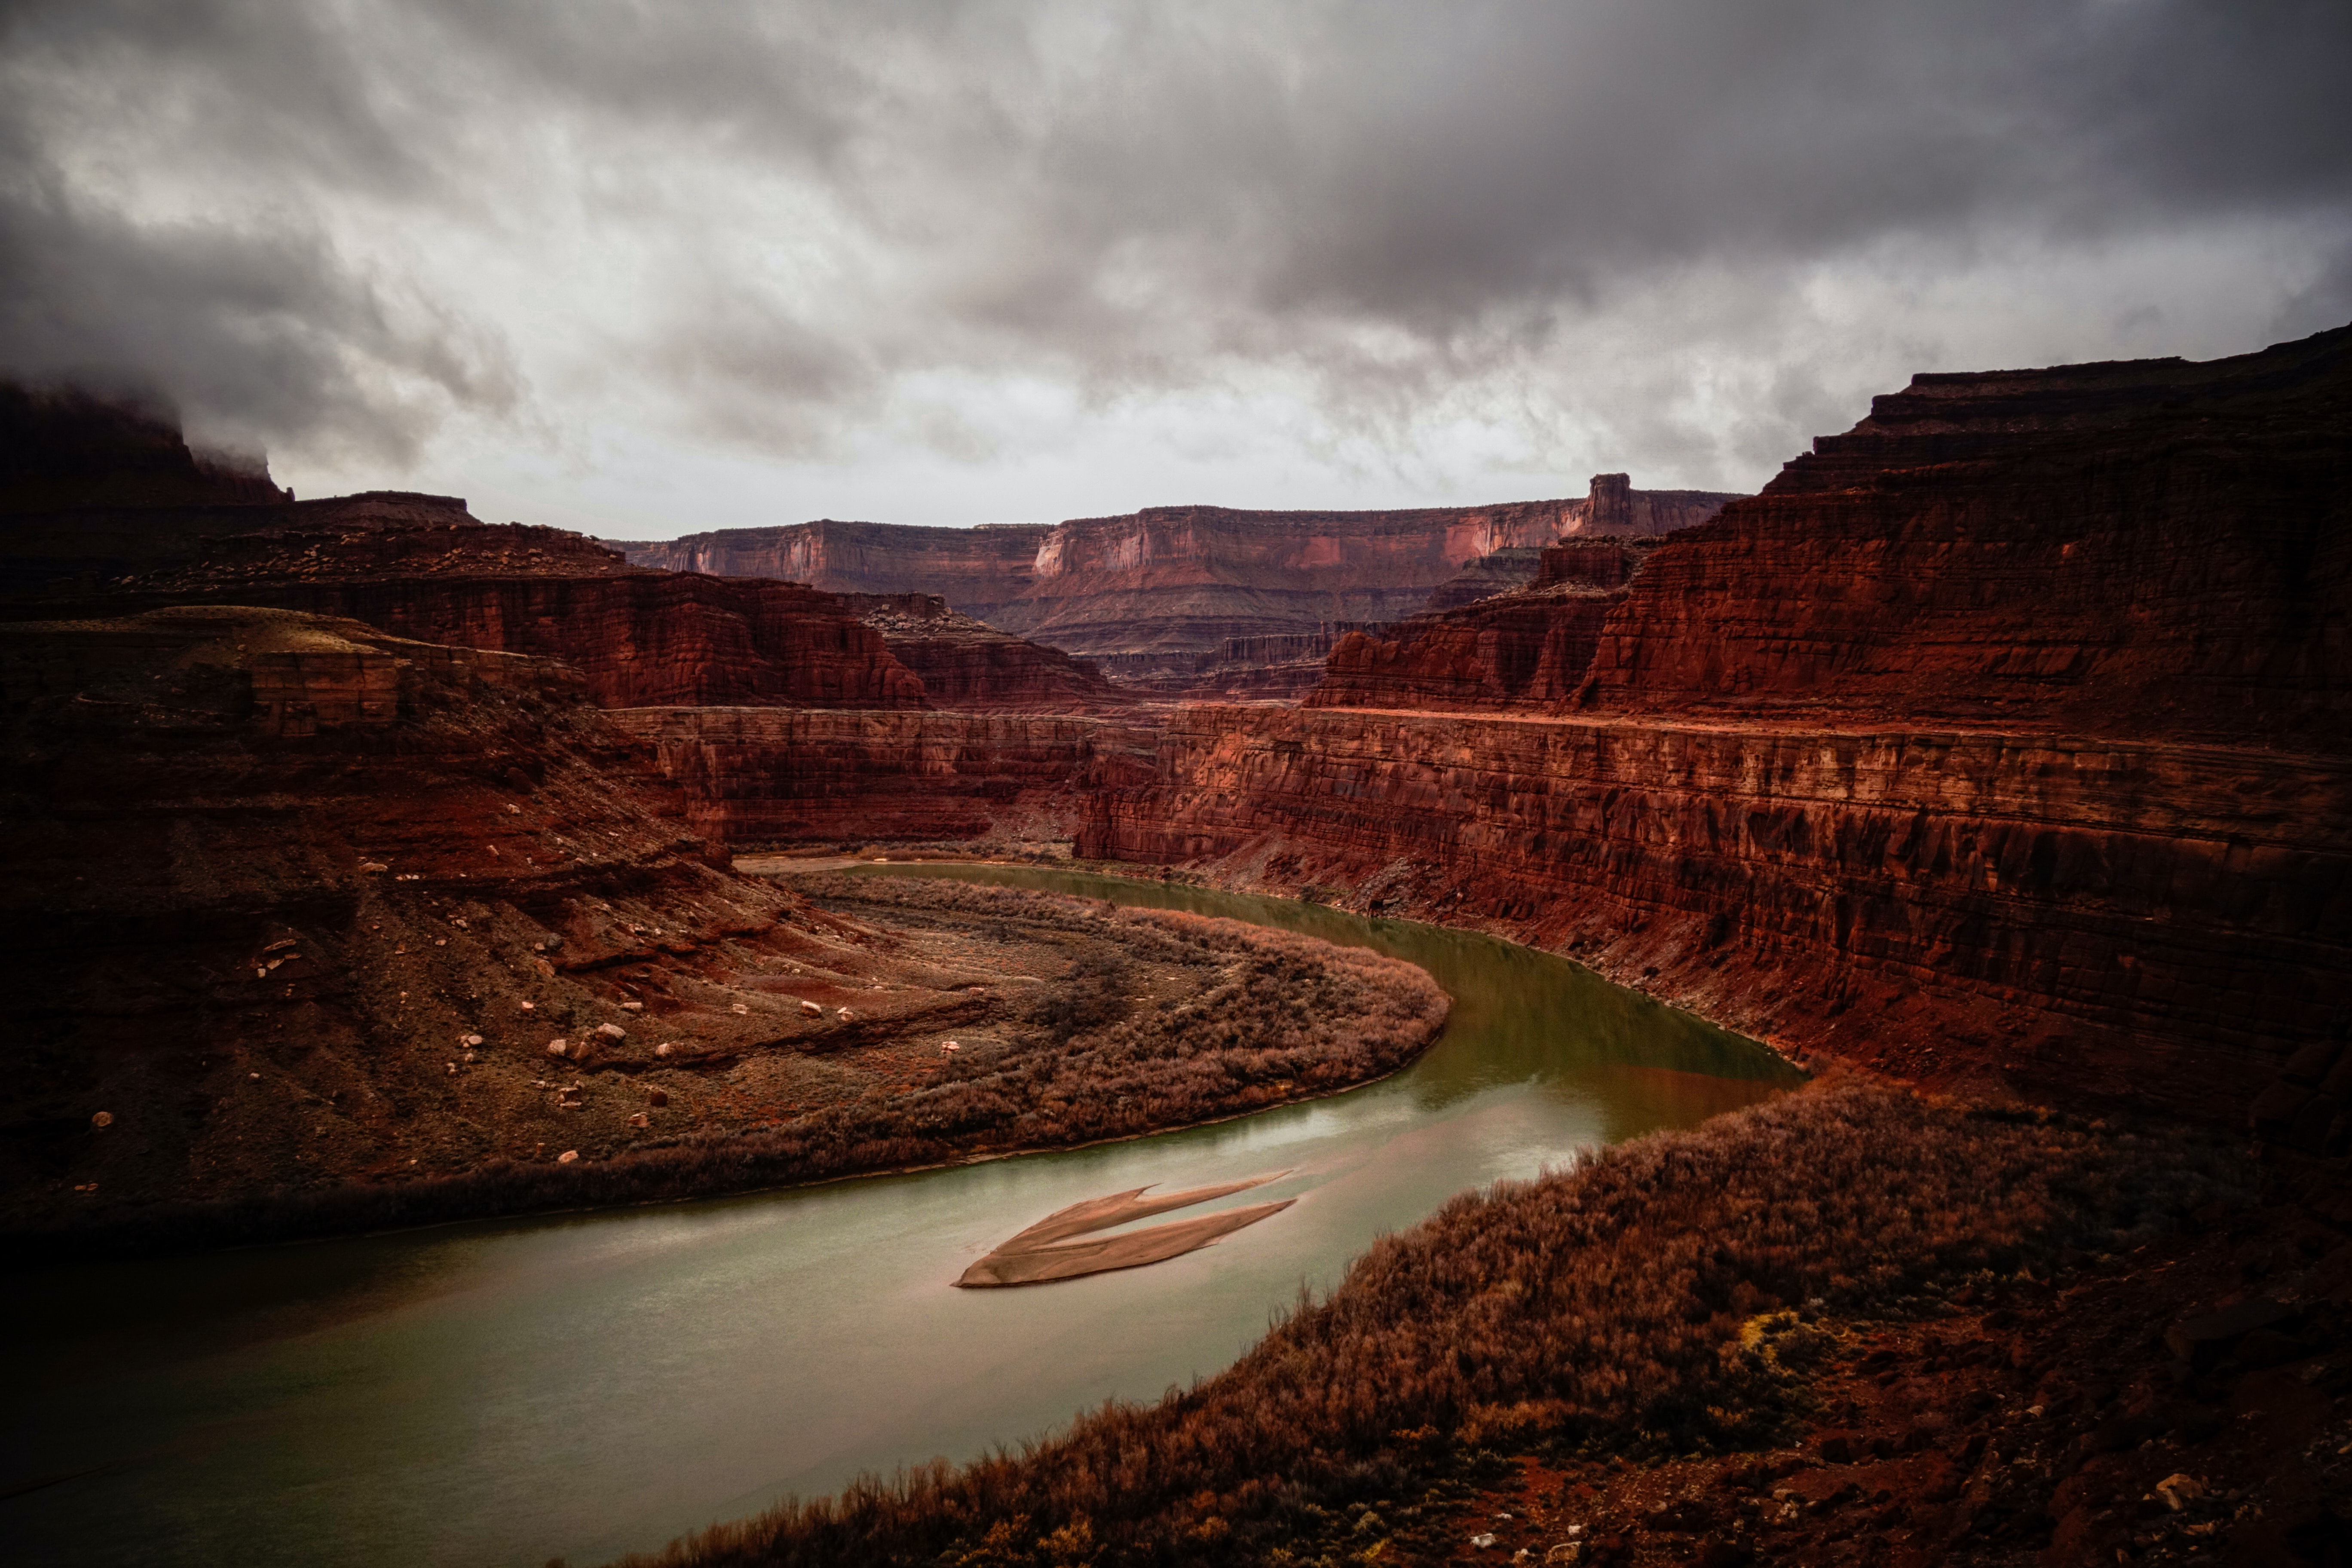 Grand Canyon in landscape photography